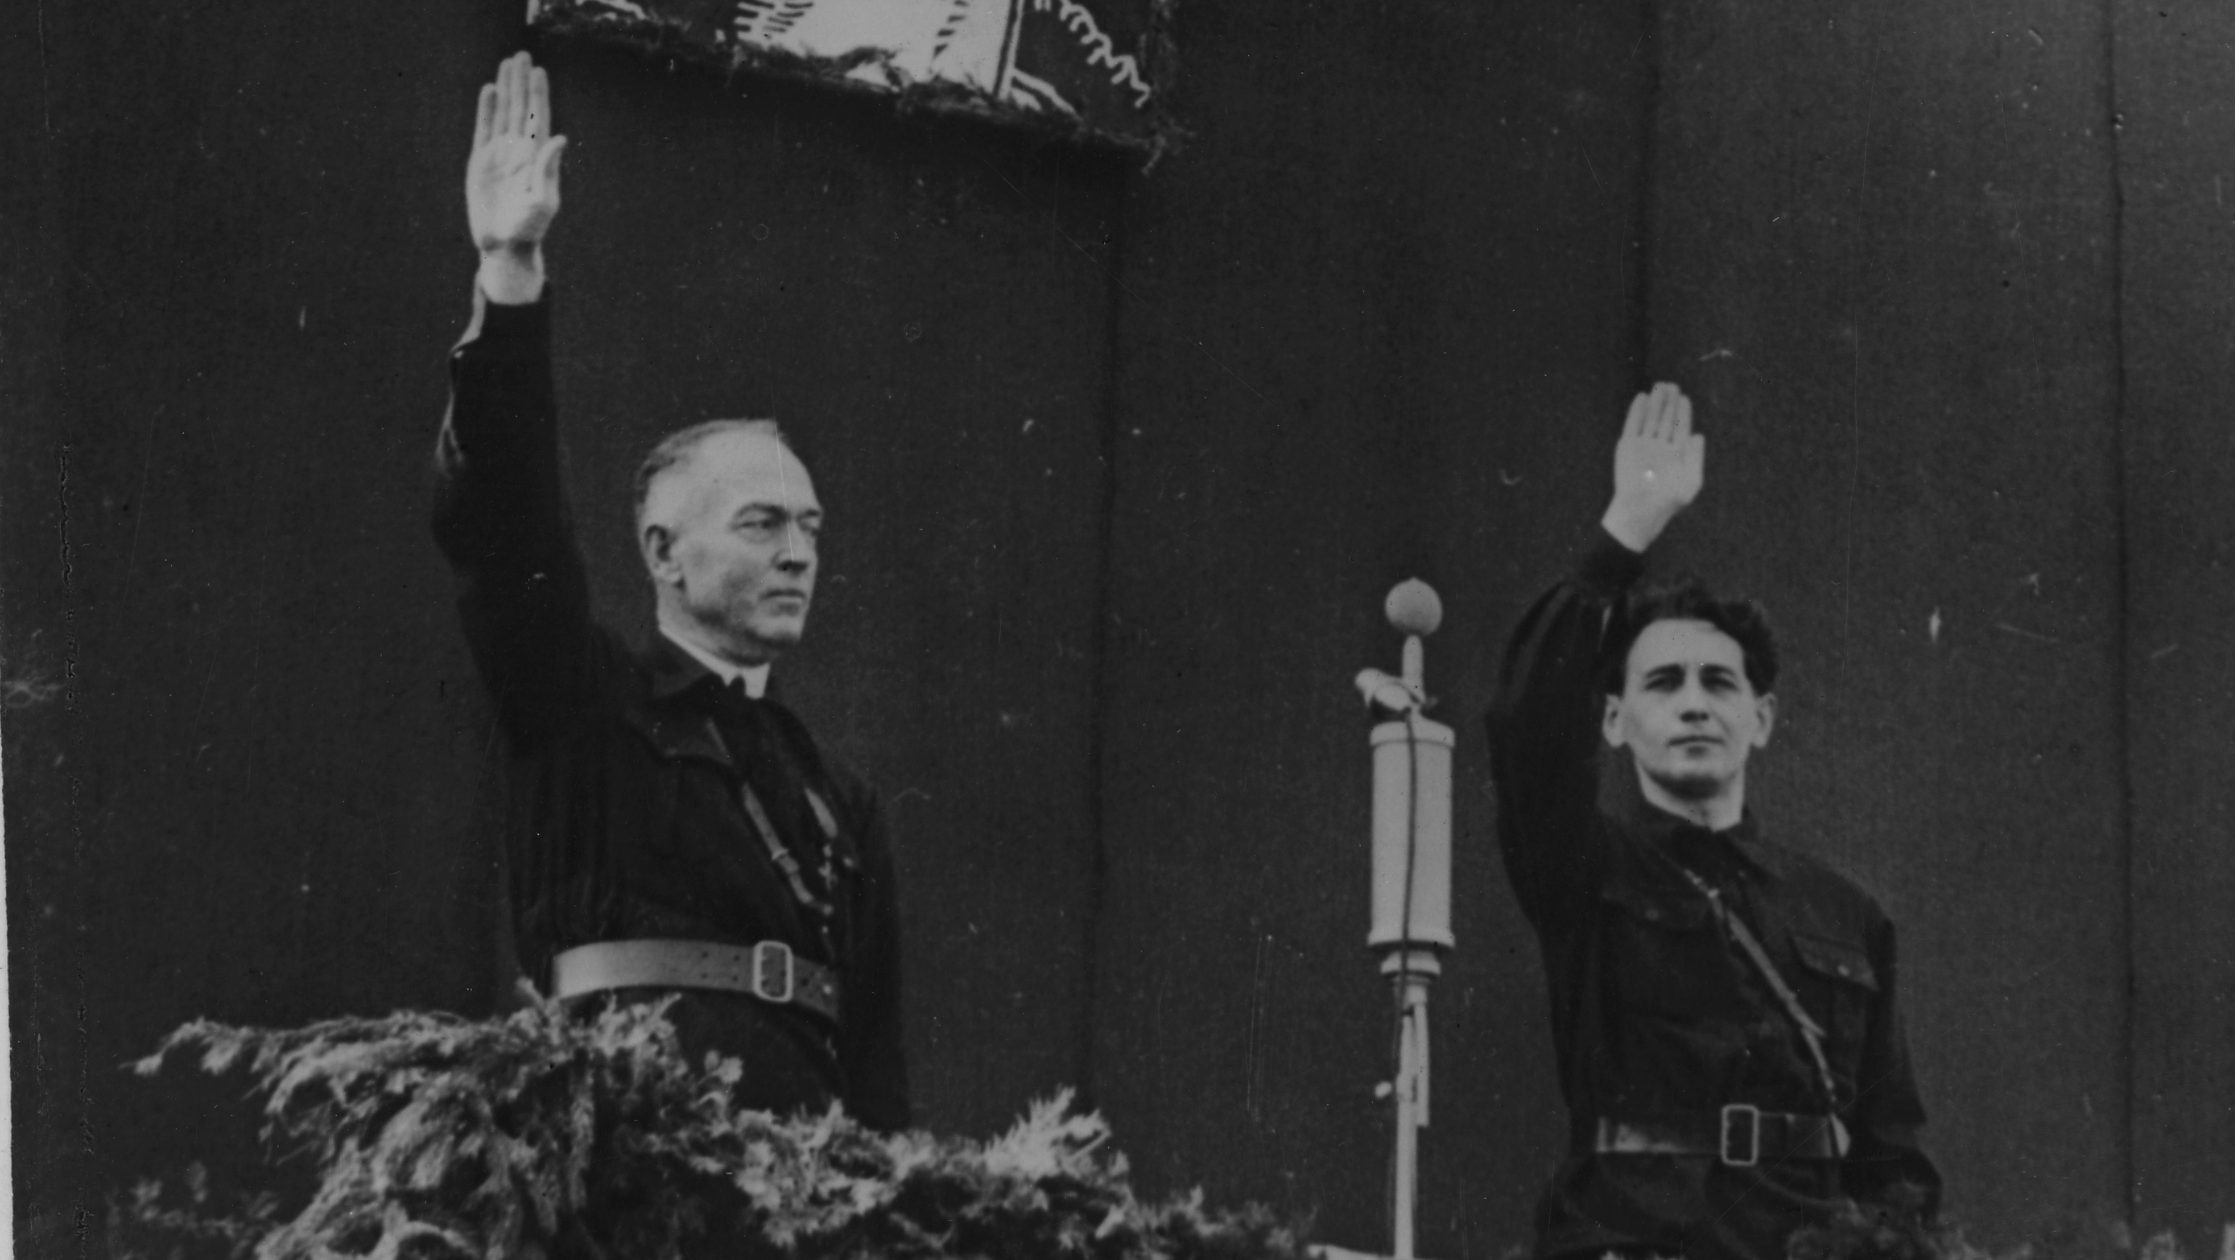 Leader of Romania's Legionnaire's Movement, Horia Sima, right, and Prime Minister Ion Antonescu, greet the crowd at a rally in Bucharest, Romania, October 10, 1940. Picture hanging above the two politicians portraits murdered legionnaire Corneliu Zelea Codreanu. (AP Photo)